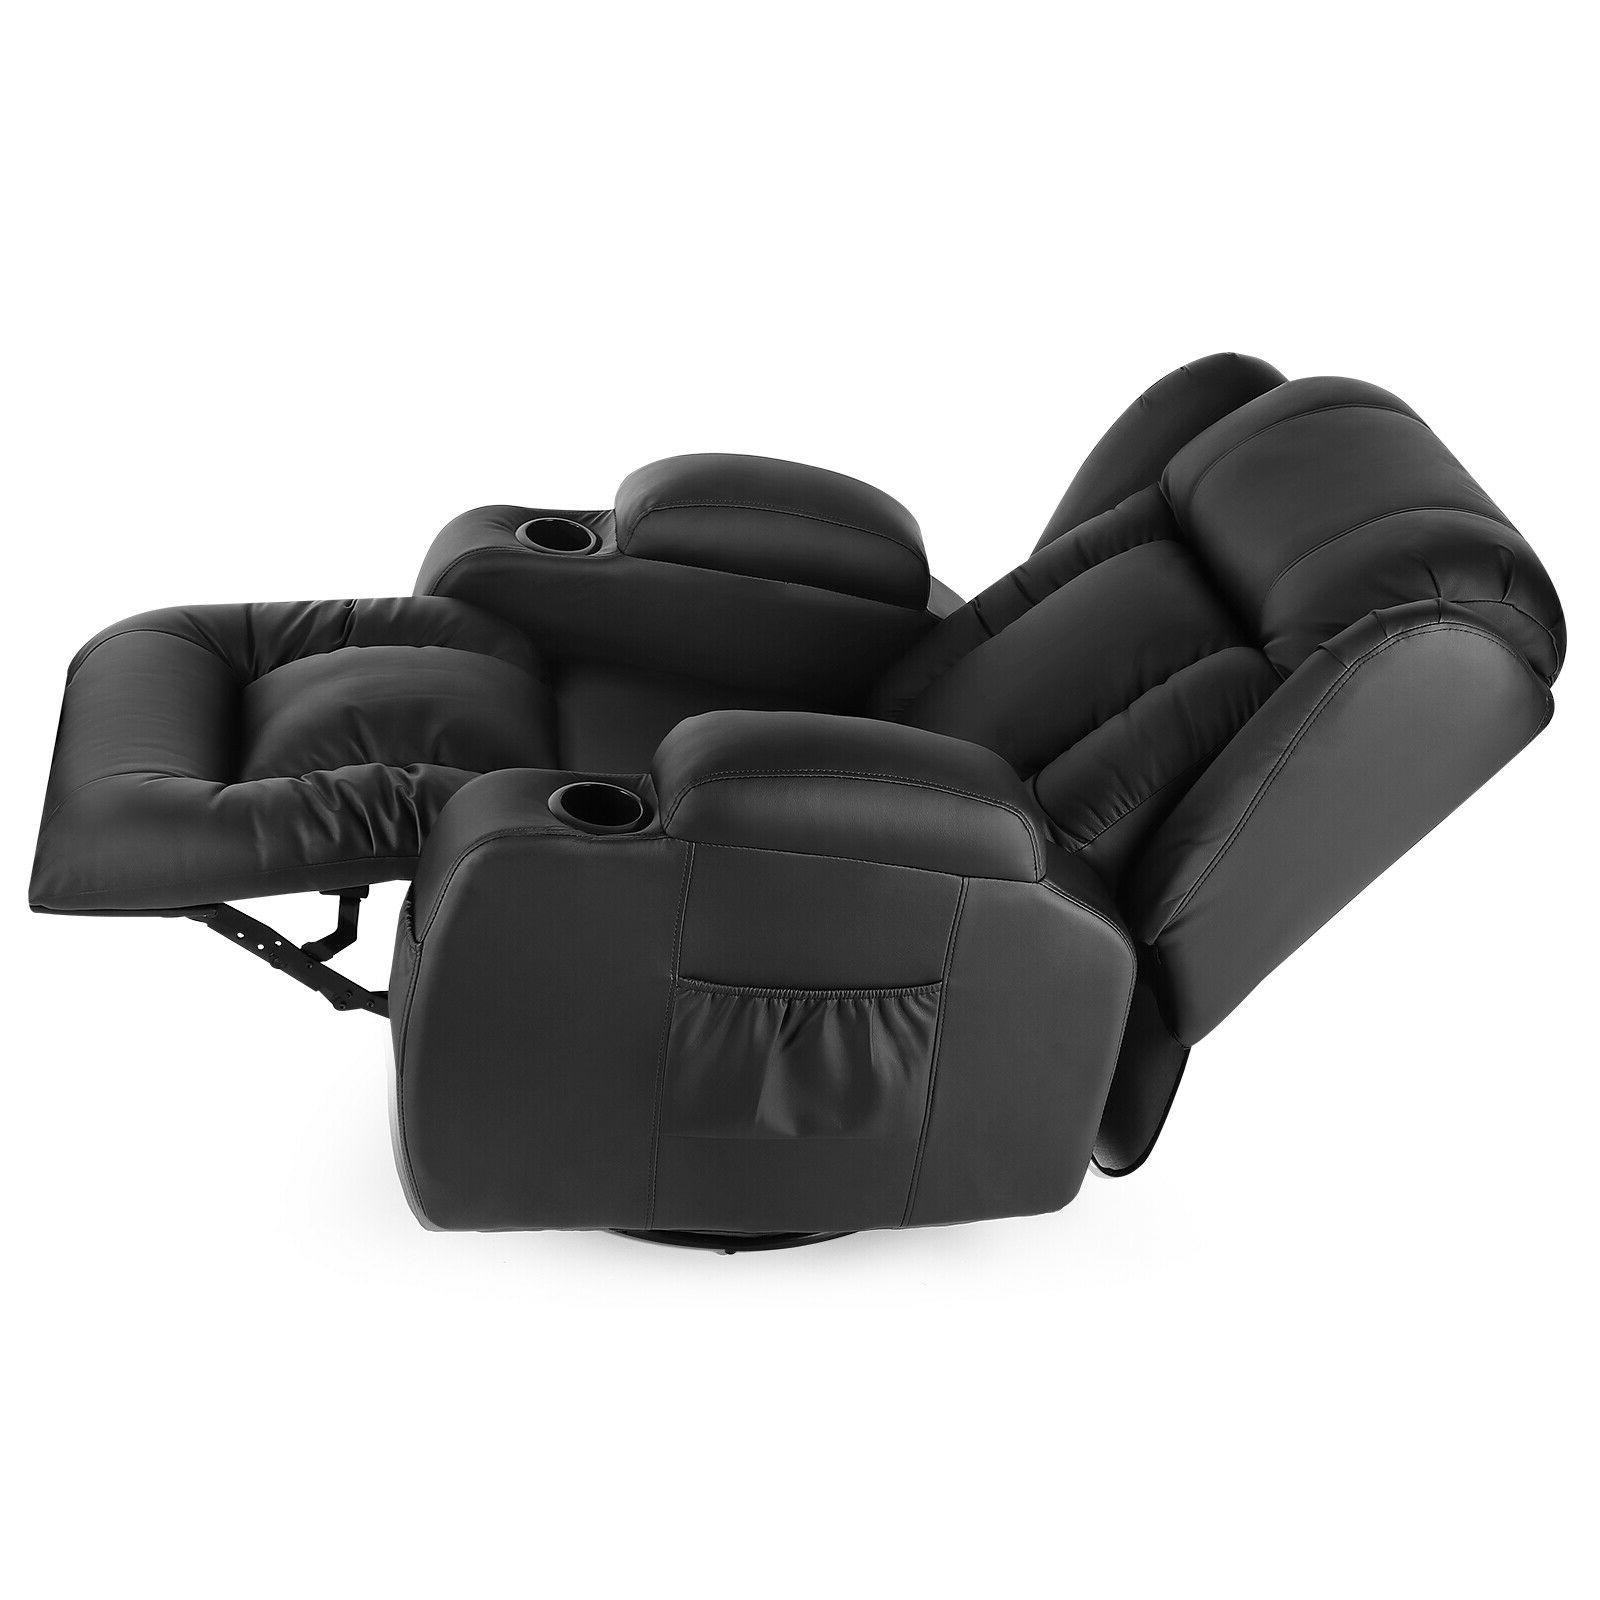 Oversize Recliner Rocking w/Control